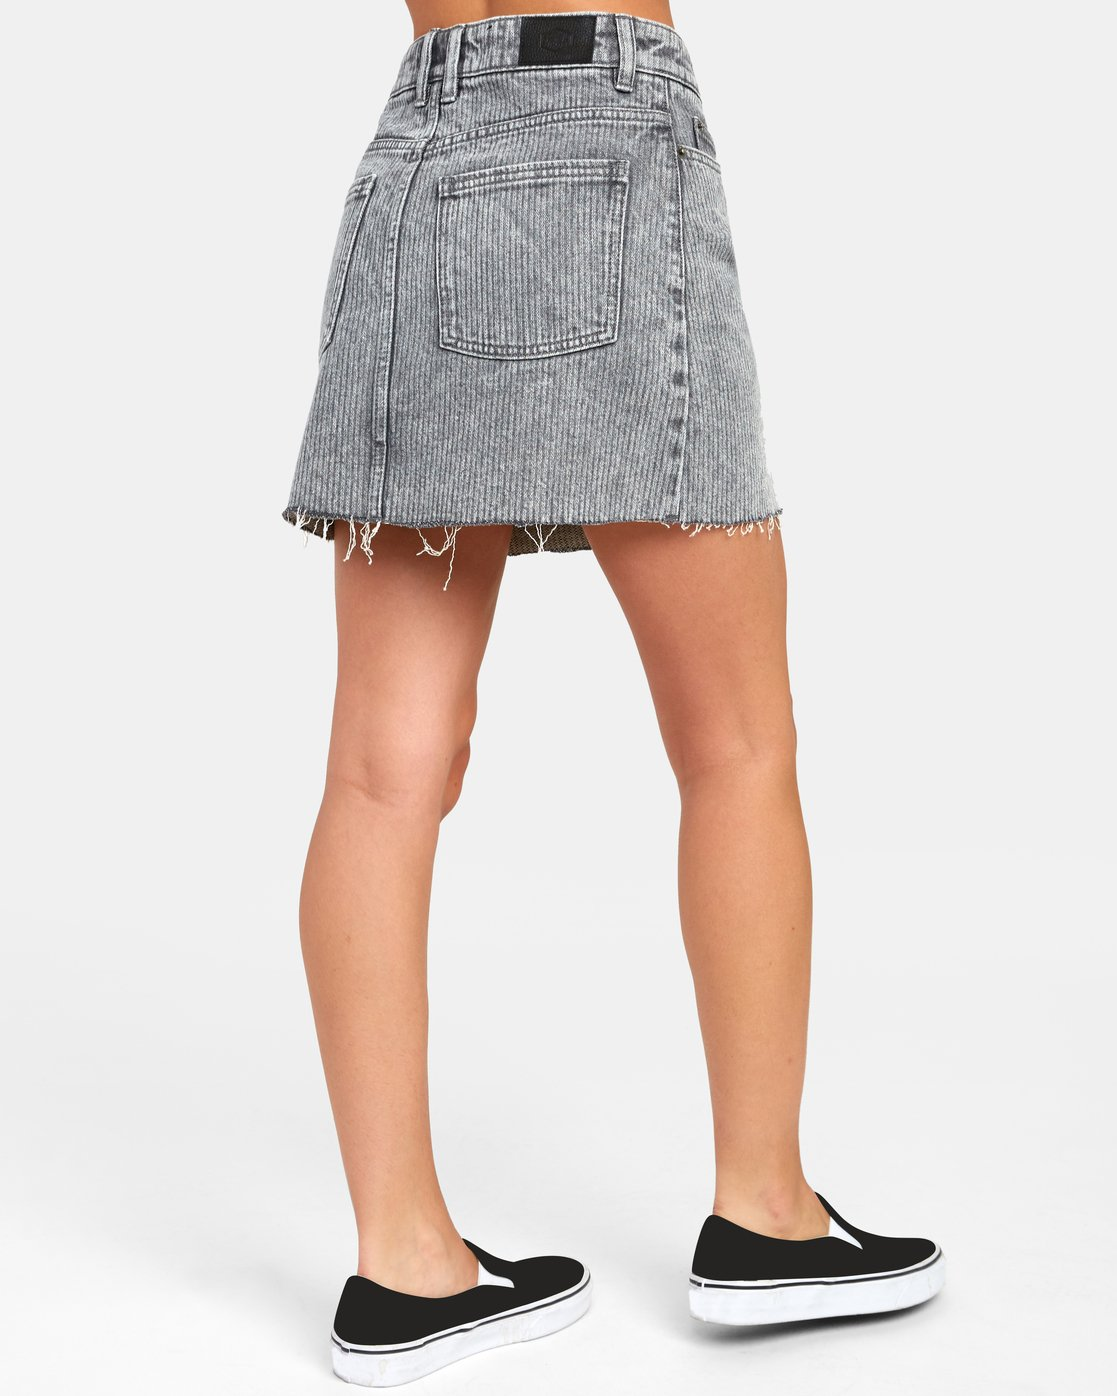 2 SIENA HIGH RISE DENIM SKIRT Multicolor WK02VRSI RVCA